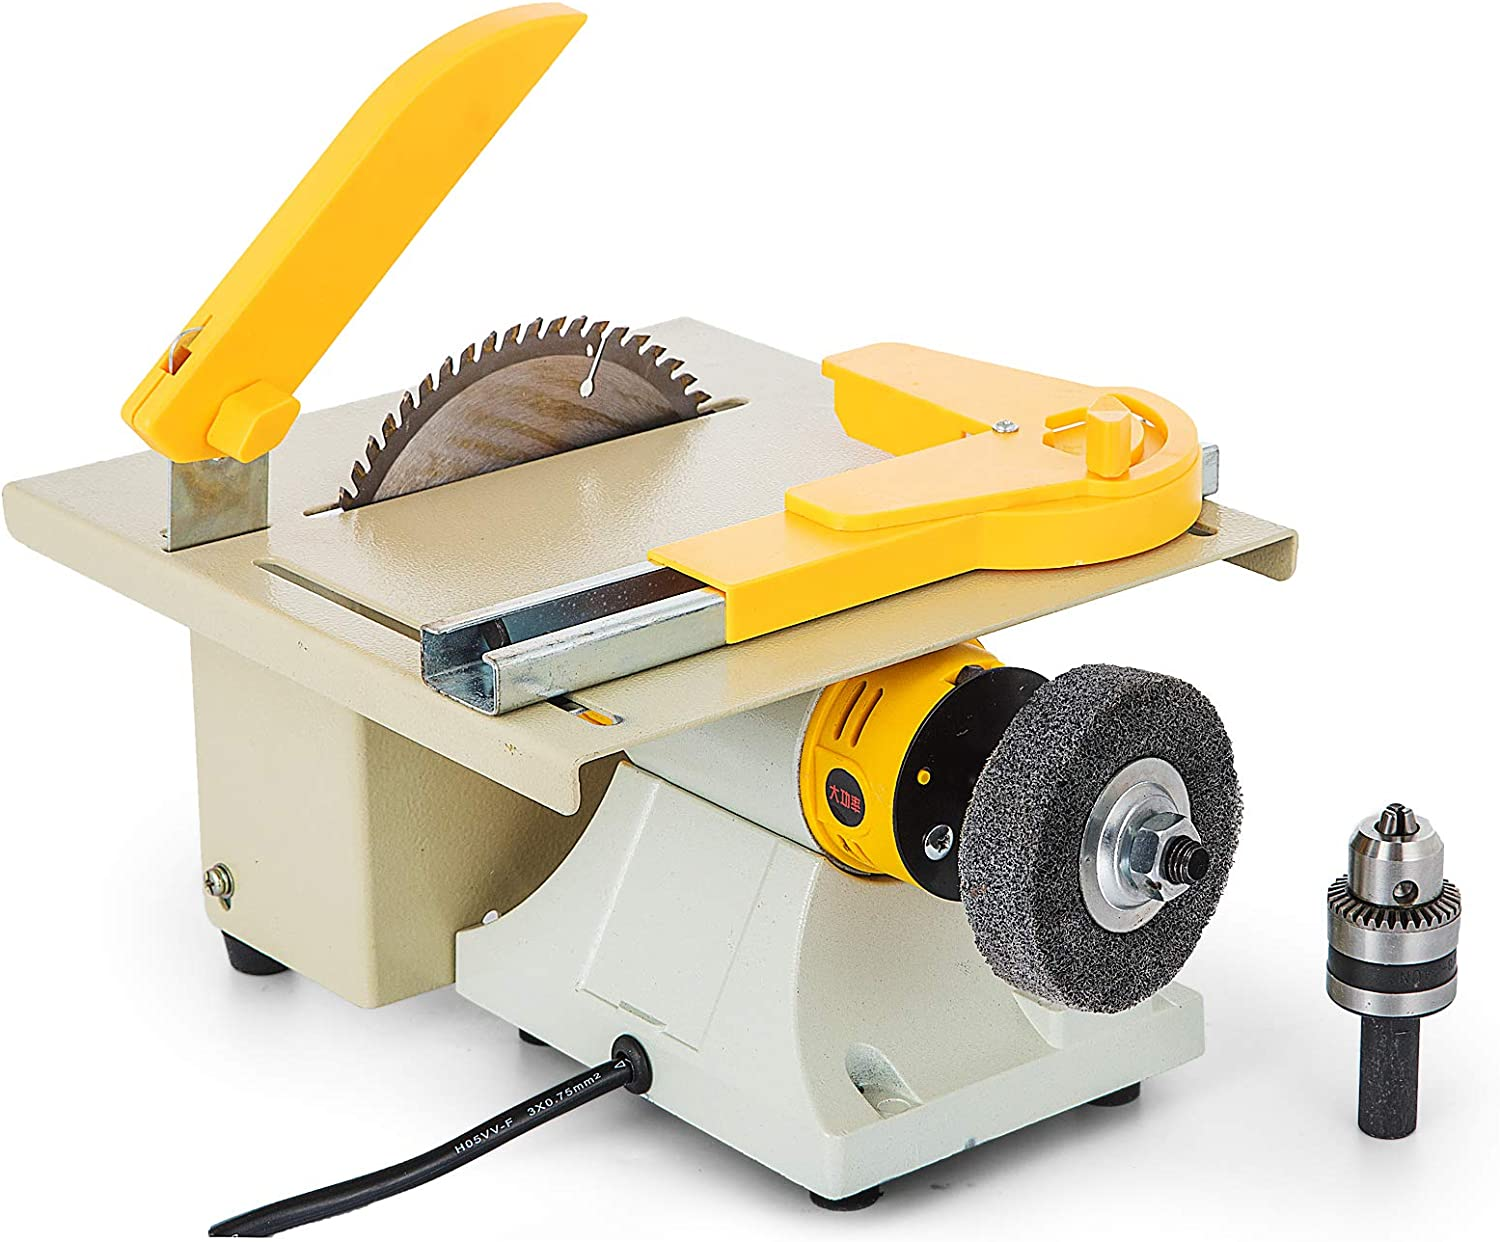 Mophorn carving machine featured image 1